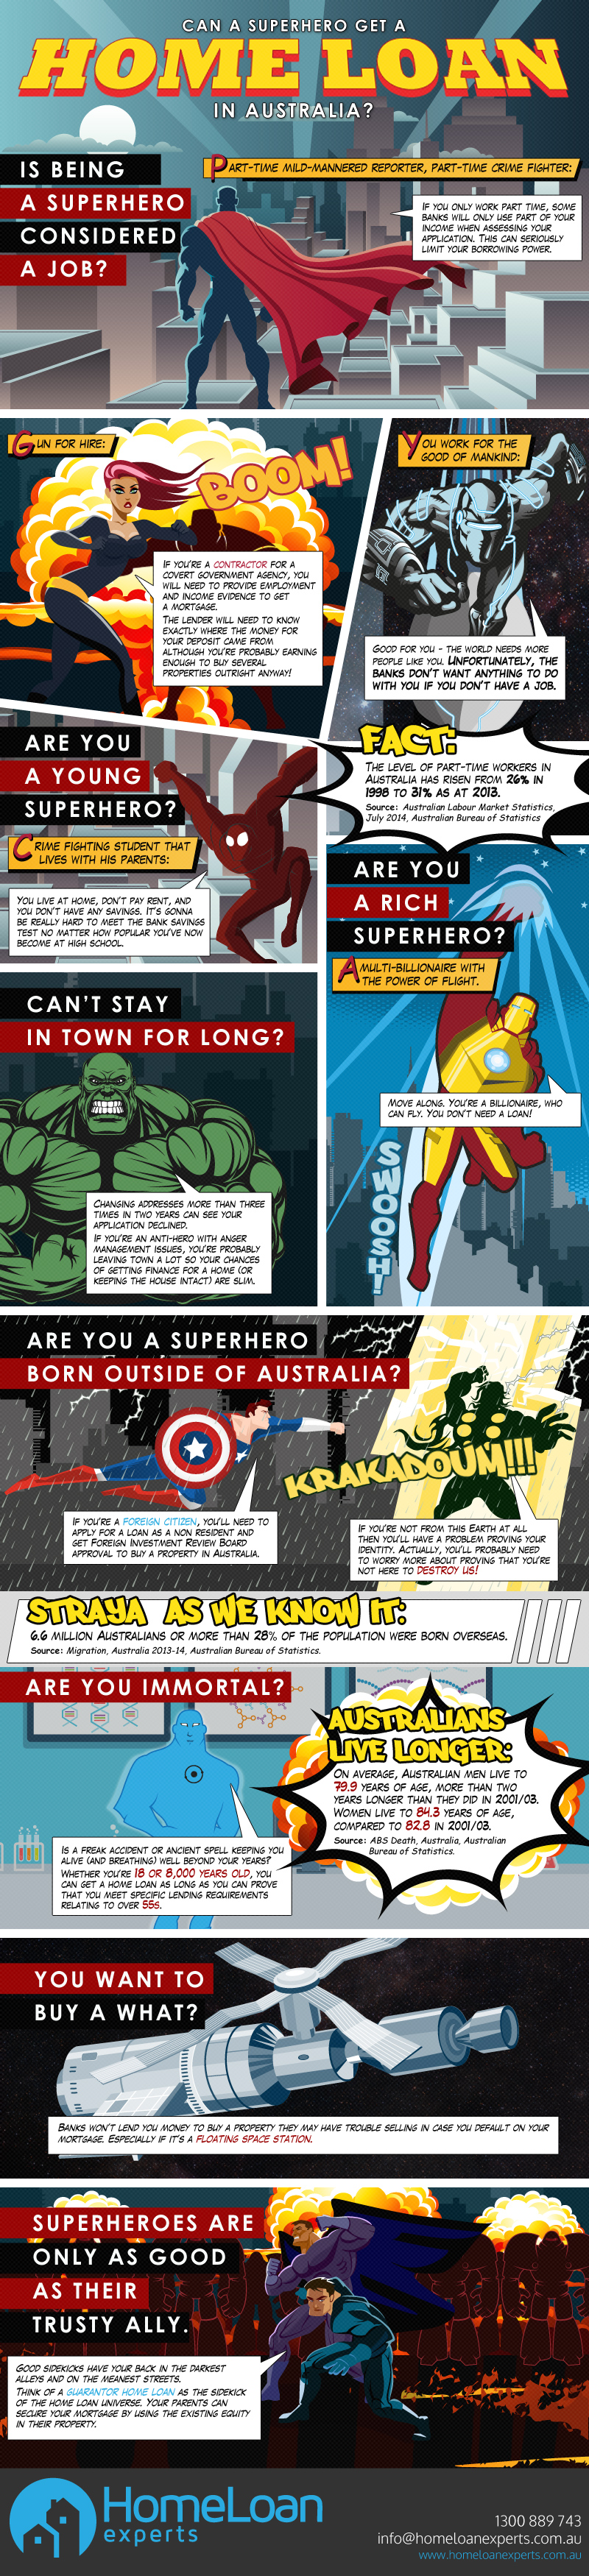 Can a superhero get a home loan in Australia?